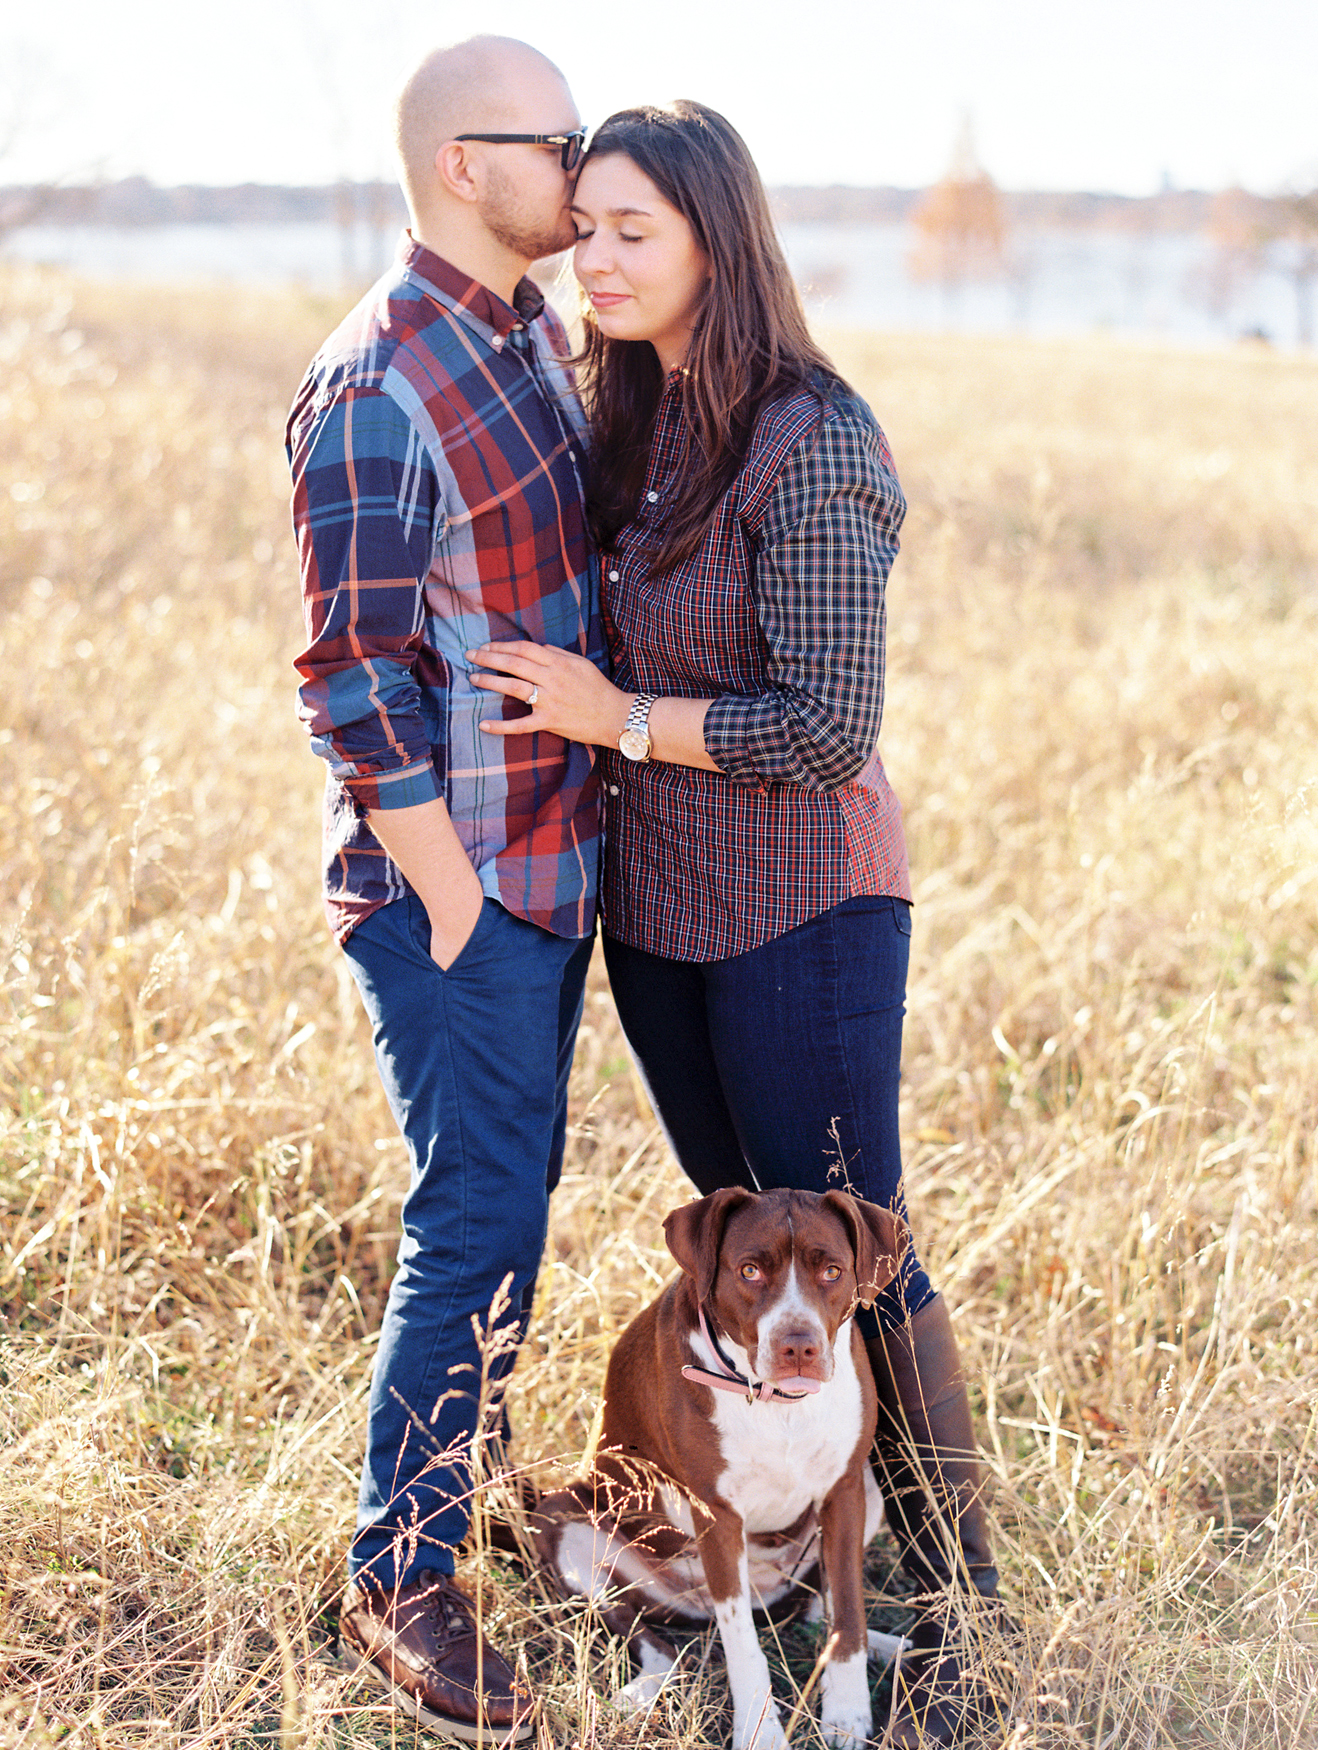 Family Portrait Session at White Rock Lake | Danielle M. Sabol, Dallas Texas Fine Art Portrait Photographer